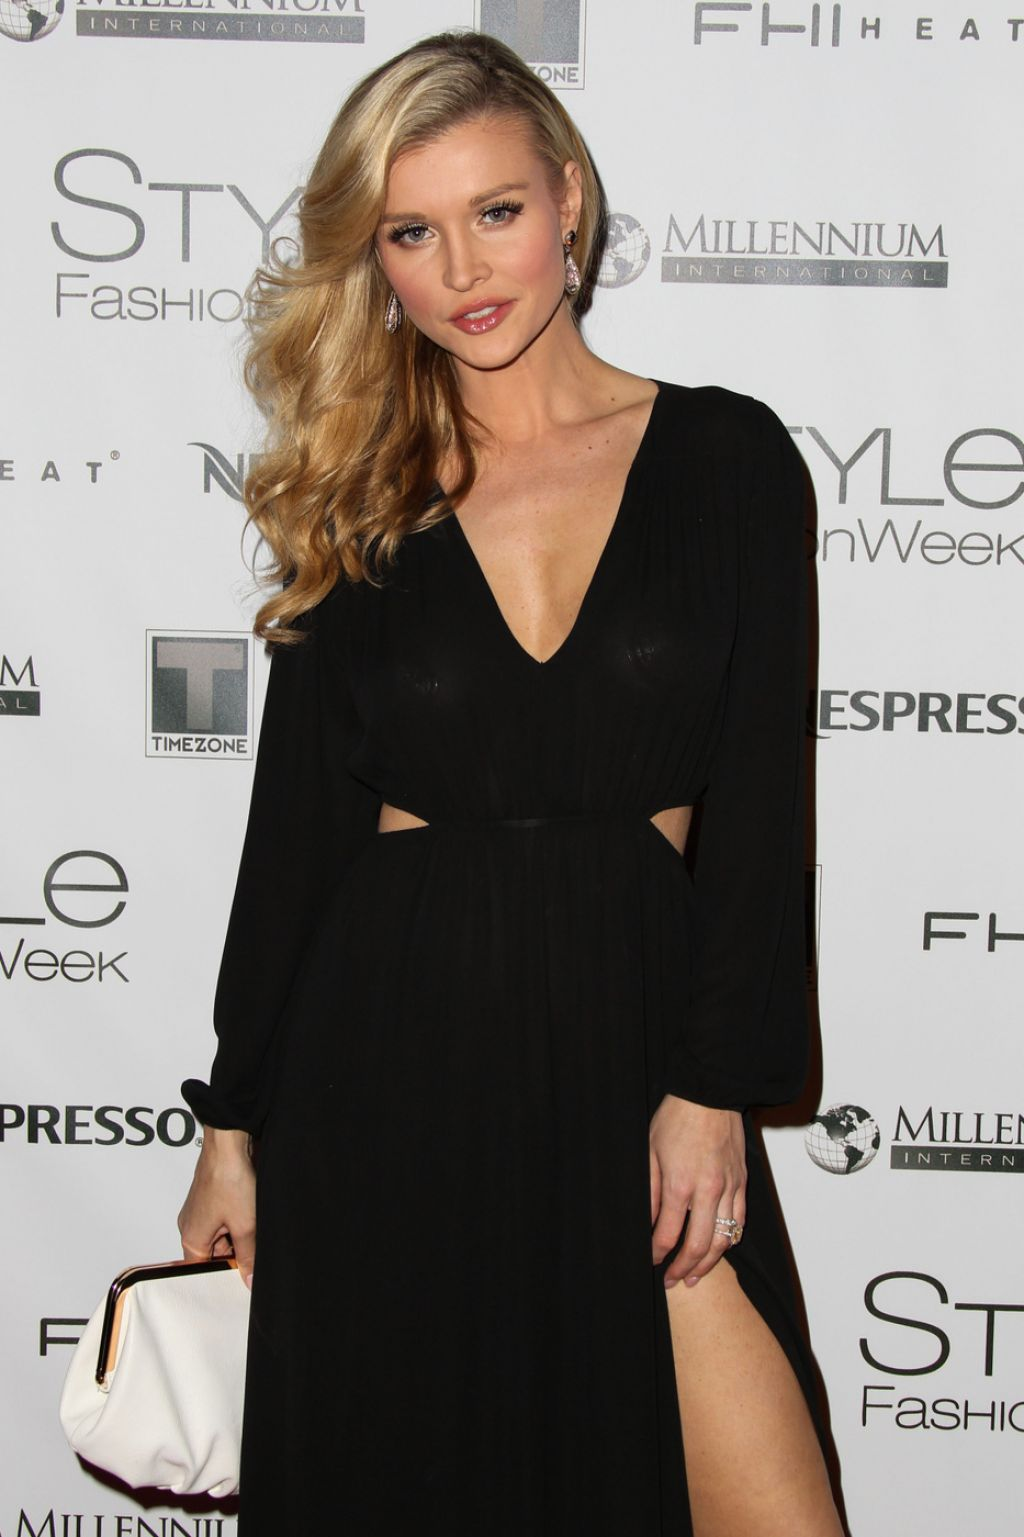 Joanna Krupa in Los Angeles - Style Fashion Week, March 2014